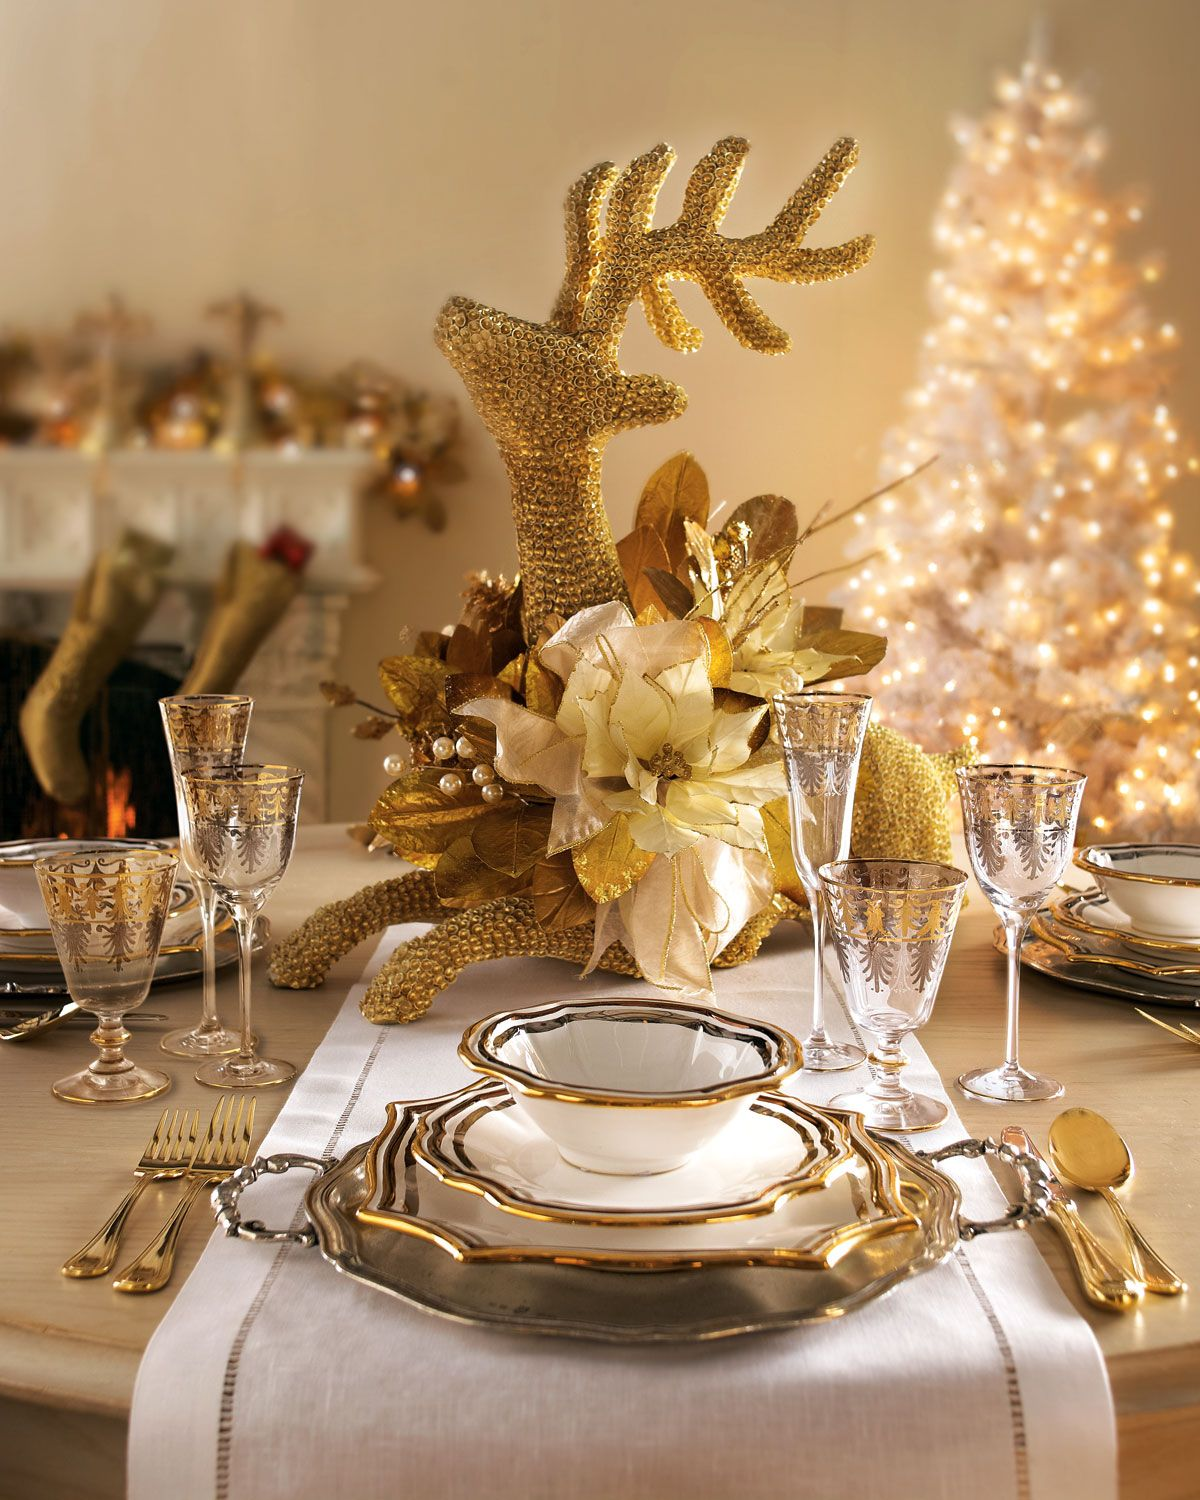 Terrific Xmas Dinner Ideas Elegant Luxurious Christmas Dinner Table Home Interior And Landscaping Ologienasavecom